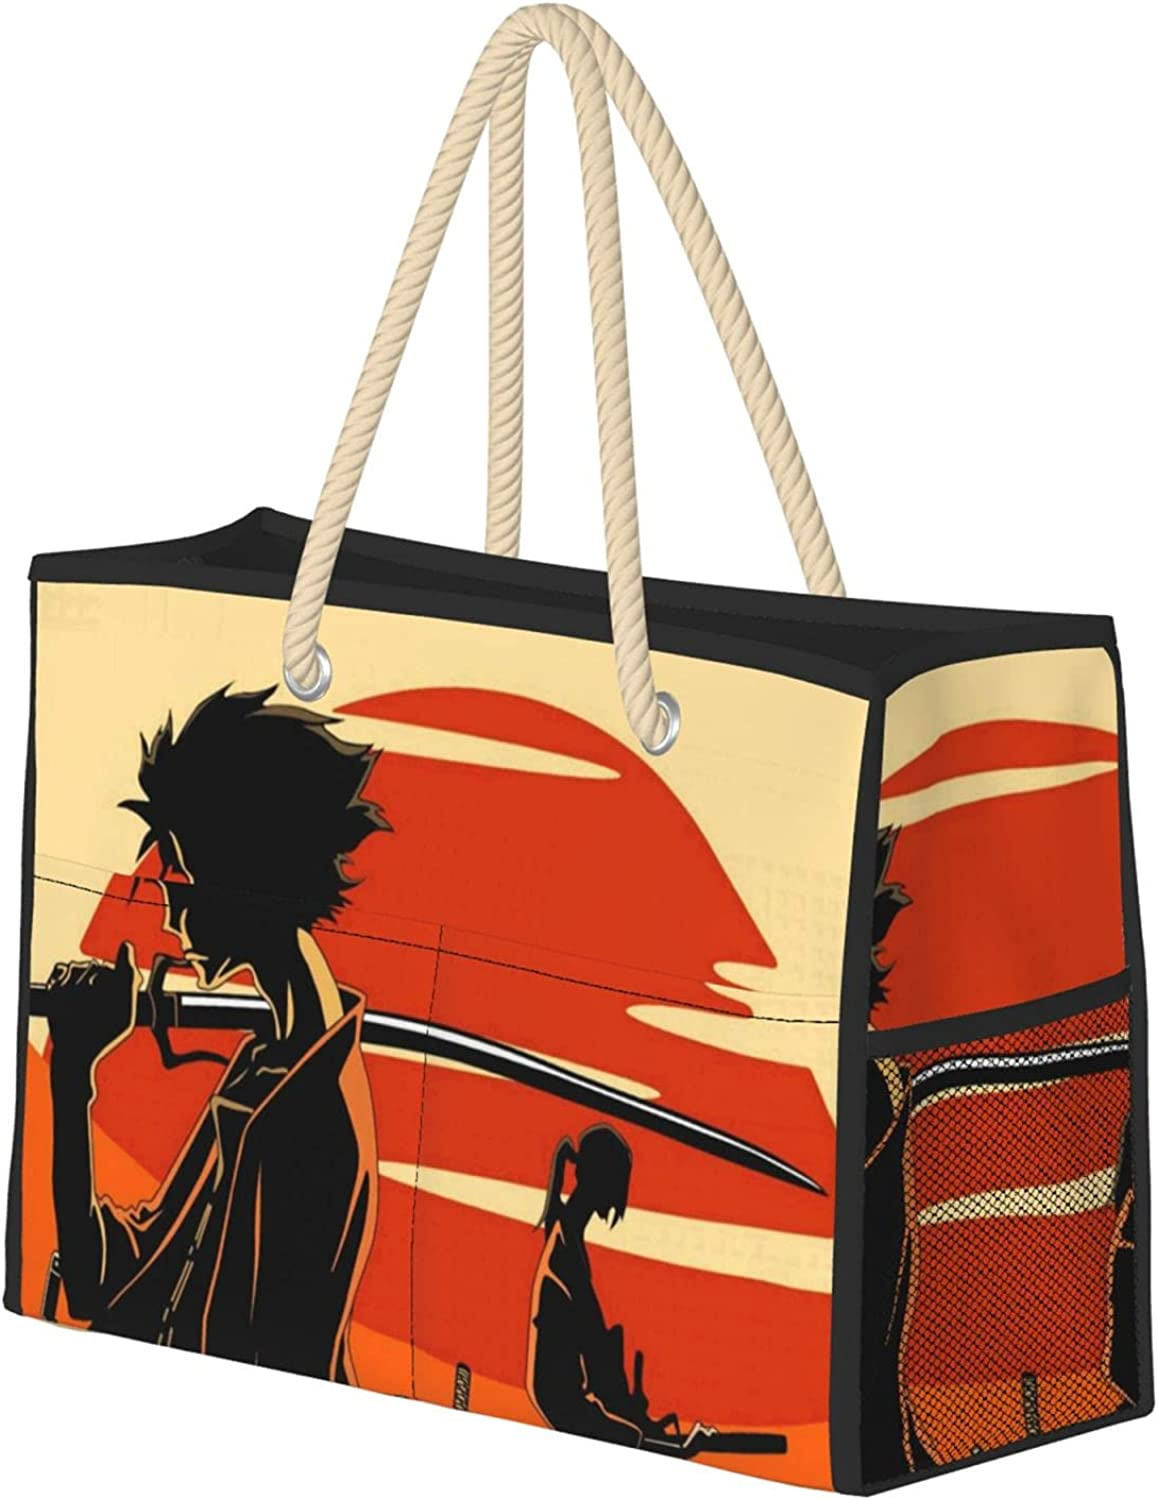 Afro Max 41% OFF Samurai Large Ladies Travel Beach Bag With Super popular specialty store Rope Knotted Han